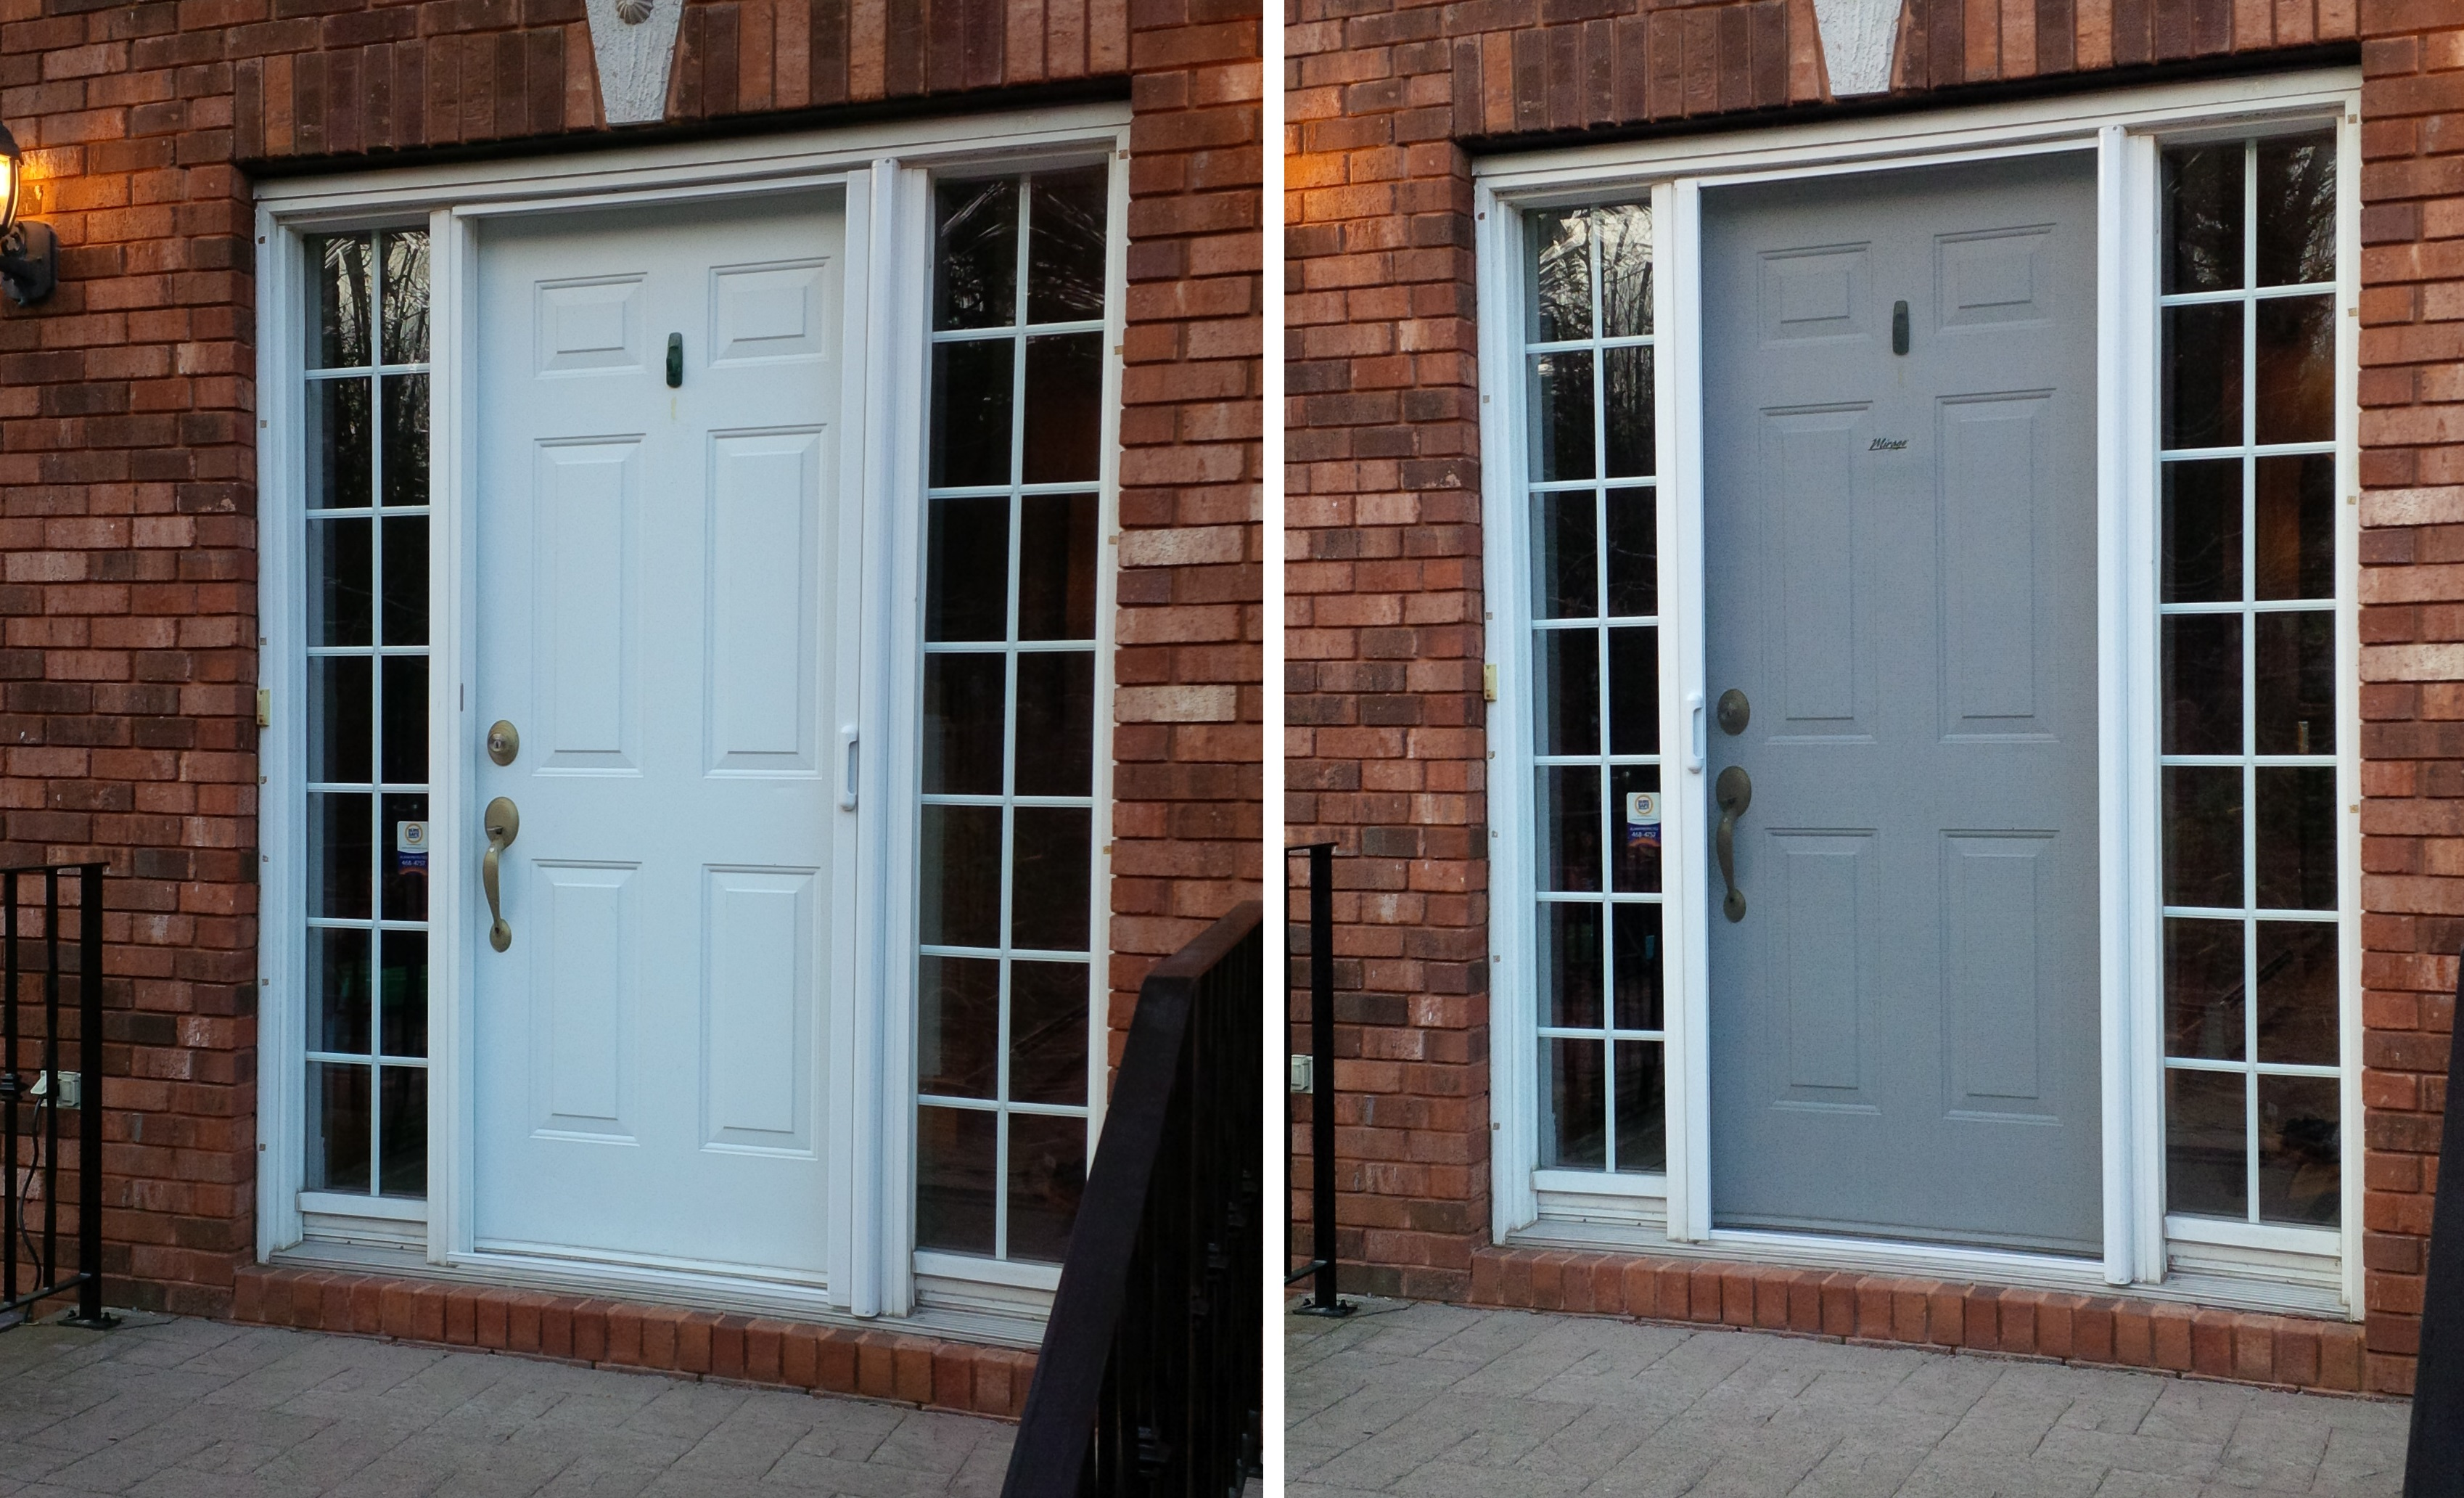 Retractable screens custom size retractable screens to fit for Retractable screen door replacement